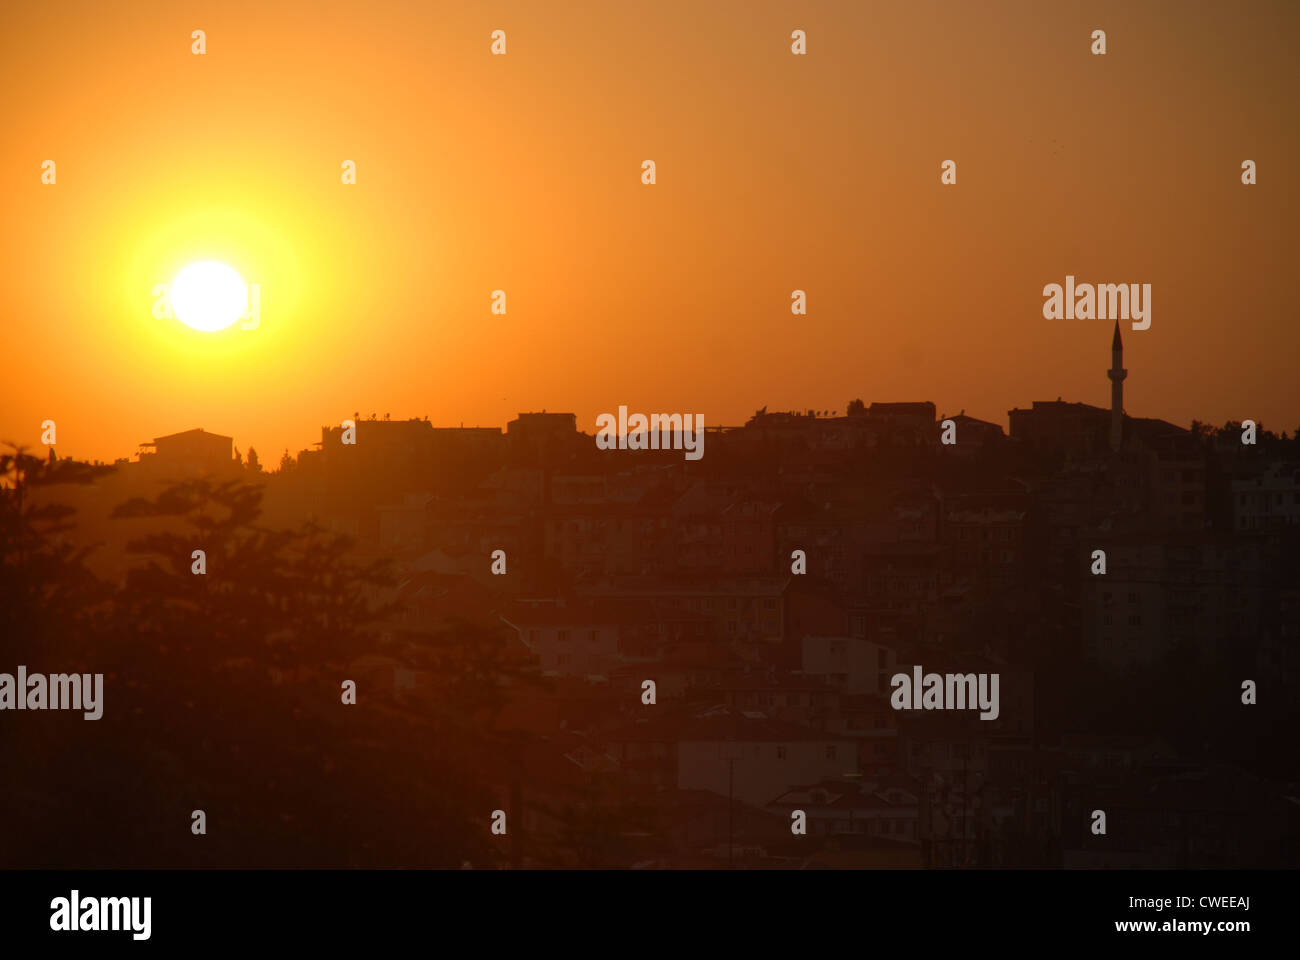 Sunset in Istanbul. Picture by Adam Alexander/Alamy - Stock Image